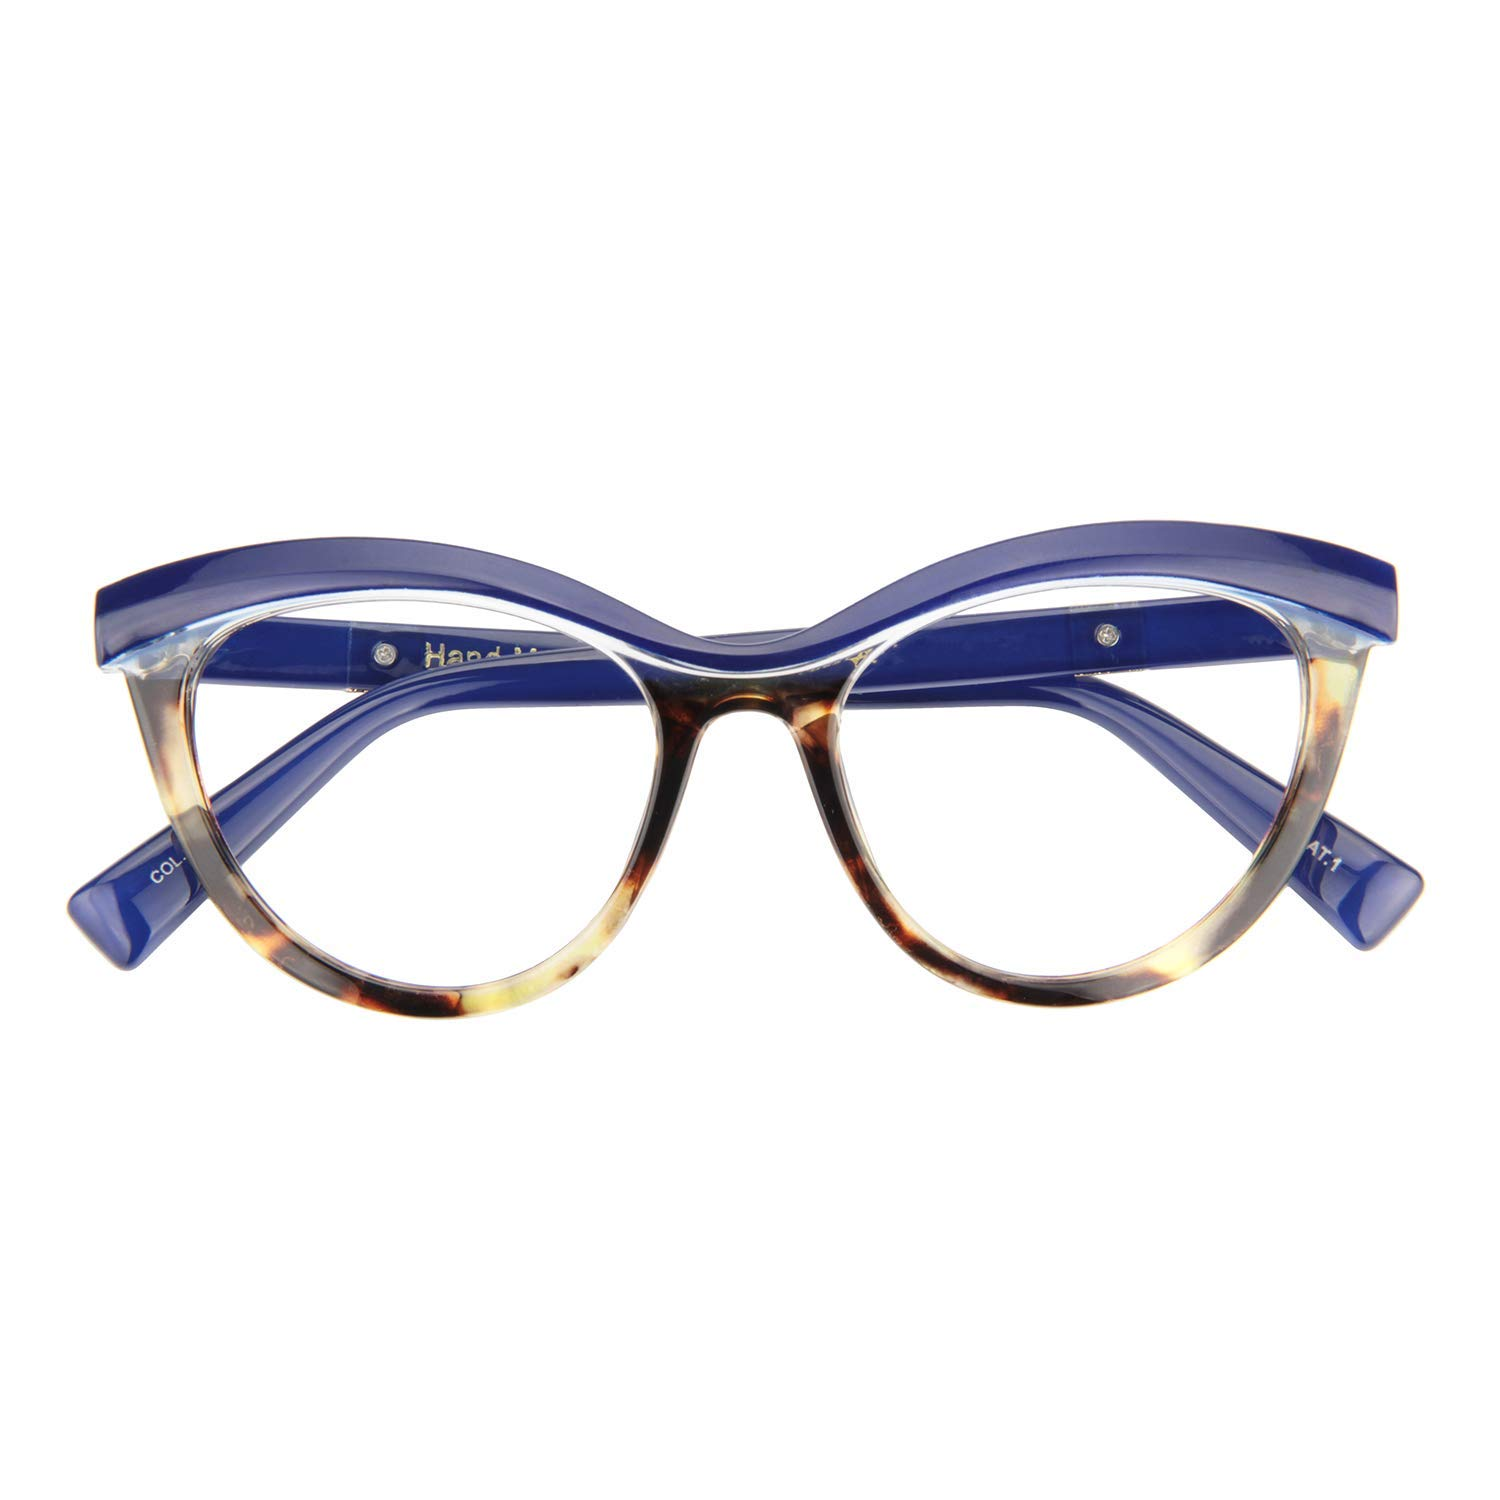 2e04aab239d4 Amazon.com: Zeelool Women's Oversized Browline Cat Eye Glasses Frame with  Clear Lens Sean FP0124-02 Blue: Clothing